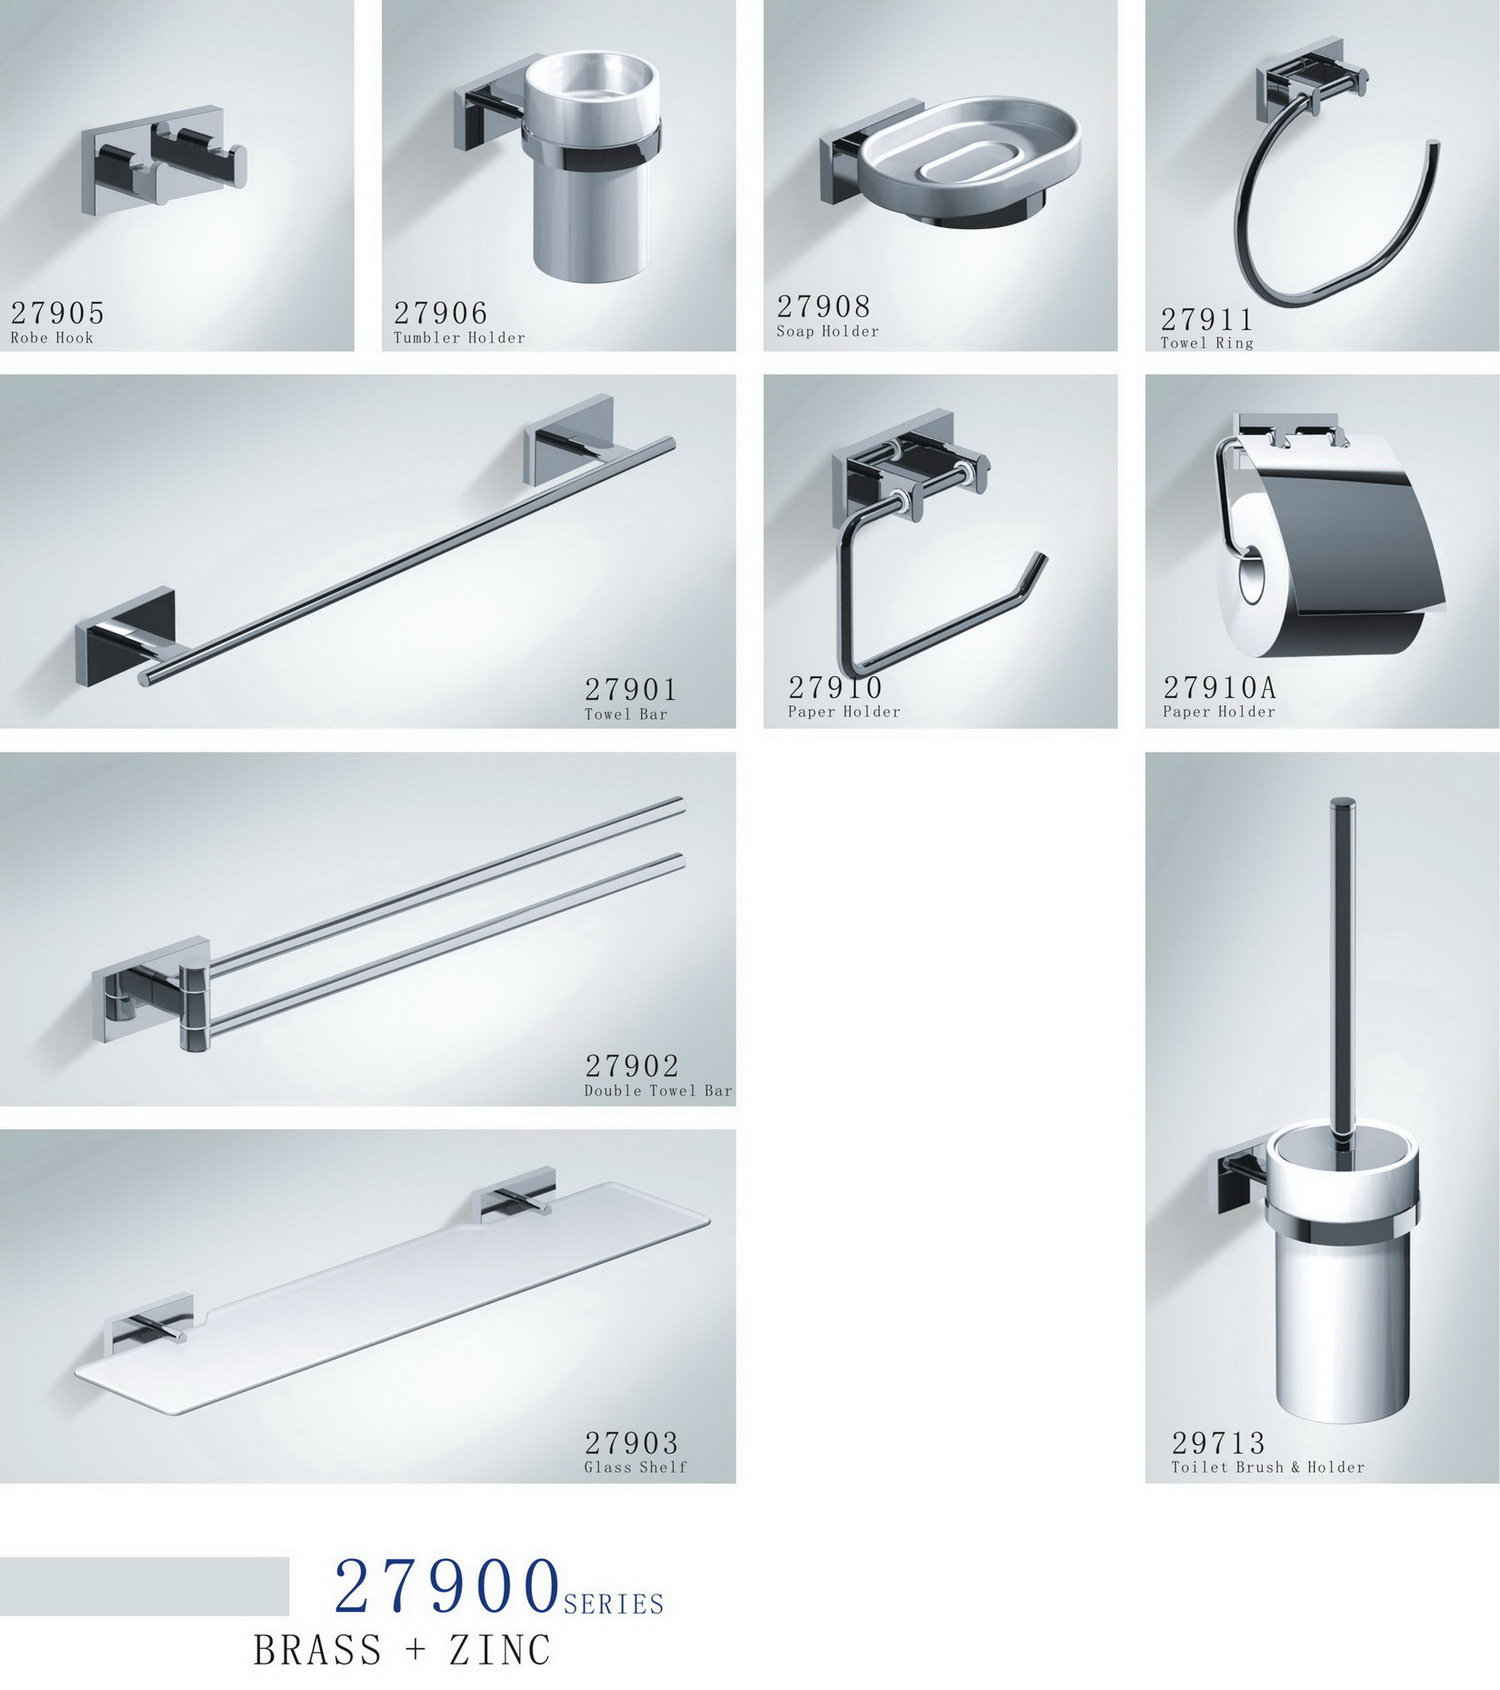 Bathroom Accessories 27900 Series - Wenzhou Range Mova Hardware Co